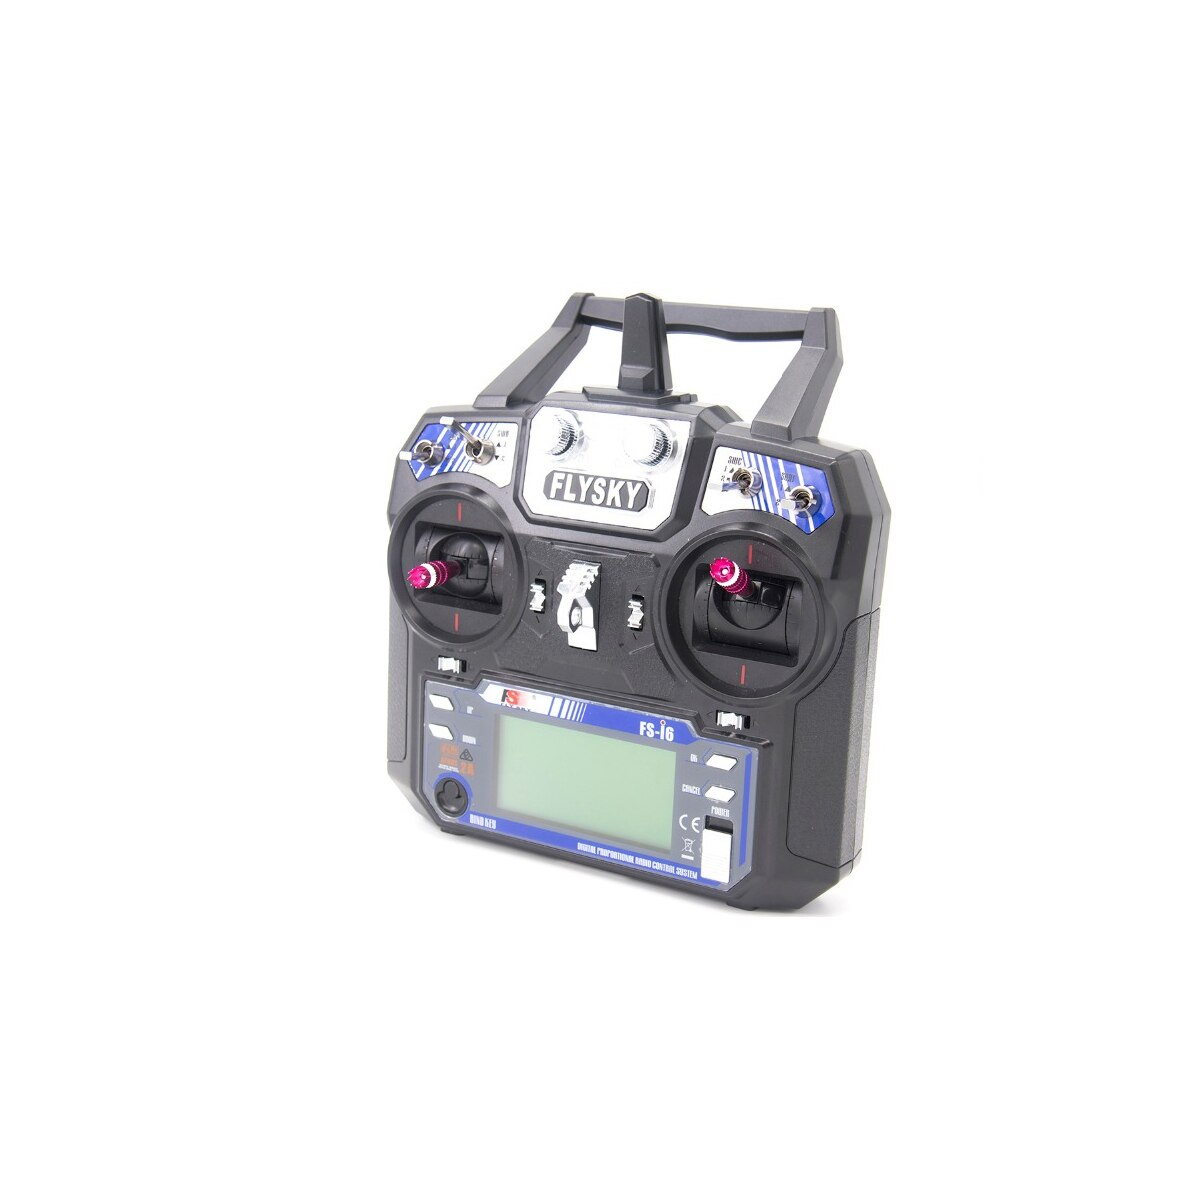 TCMM FlySky FS-i6 2.4GHZ 6CH Remote Control For RC Helicopter Multi-rotor drone enlarge